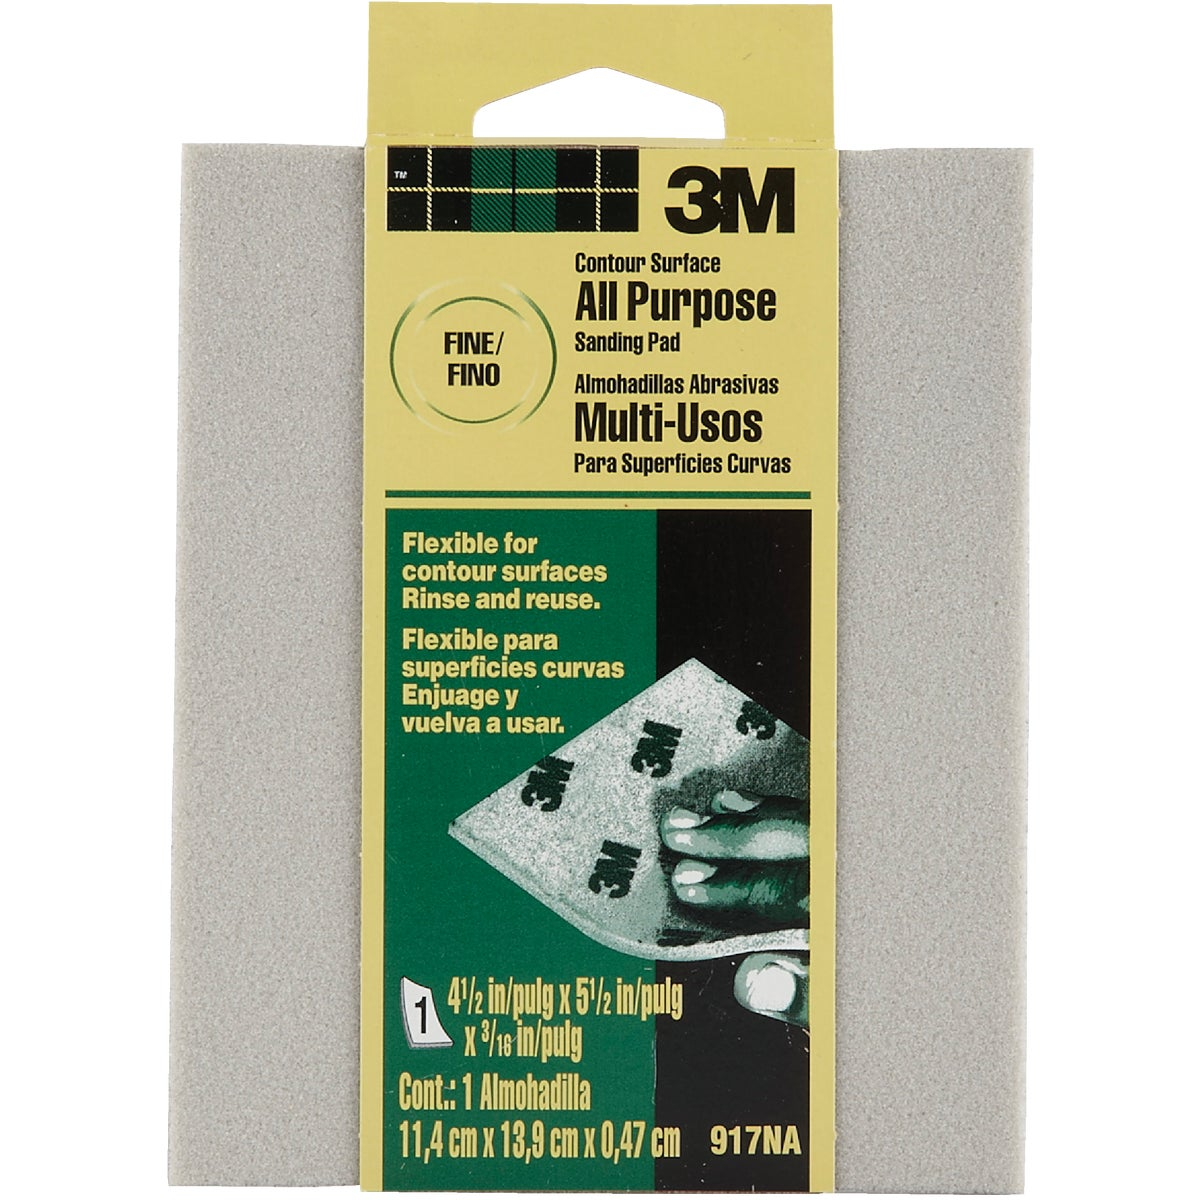 3M Contour Surface All-Purpose 4-1/2 In. x 5-1/2 In. x 3/16 In. Fine Sanding Sponge